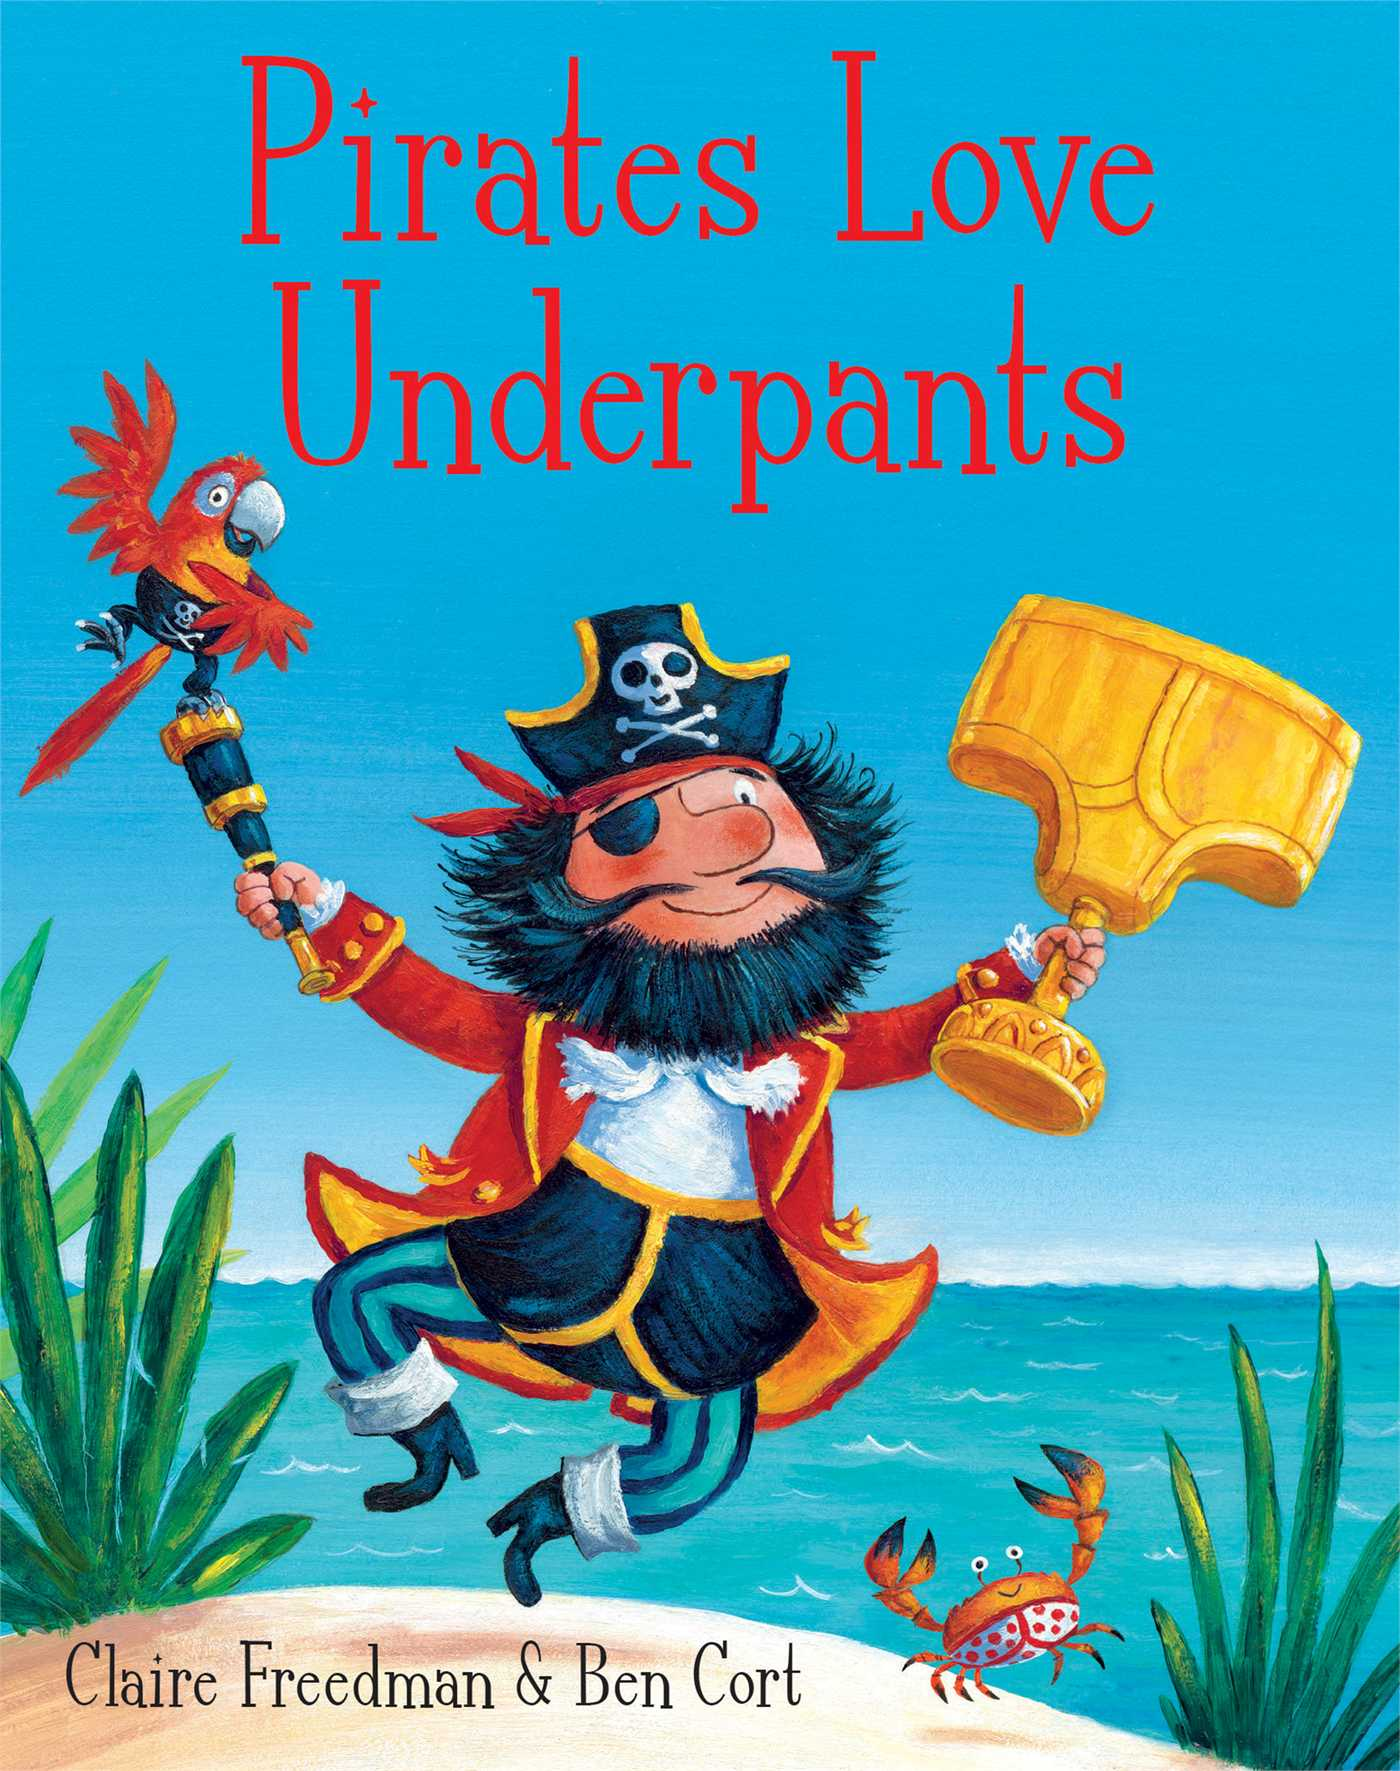 Pirates love underpants book by claire freedman ben cort book cover image jpg pirates love underpants fandeluxe Image collections